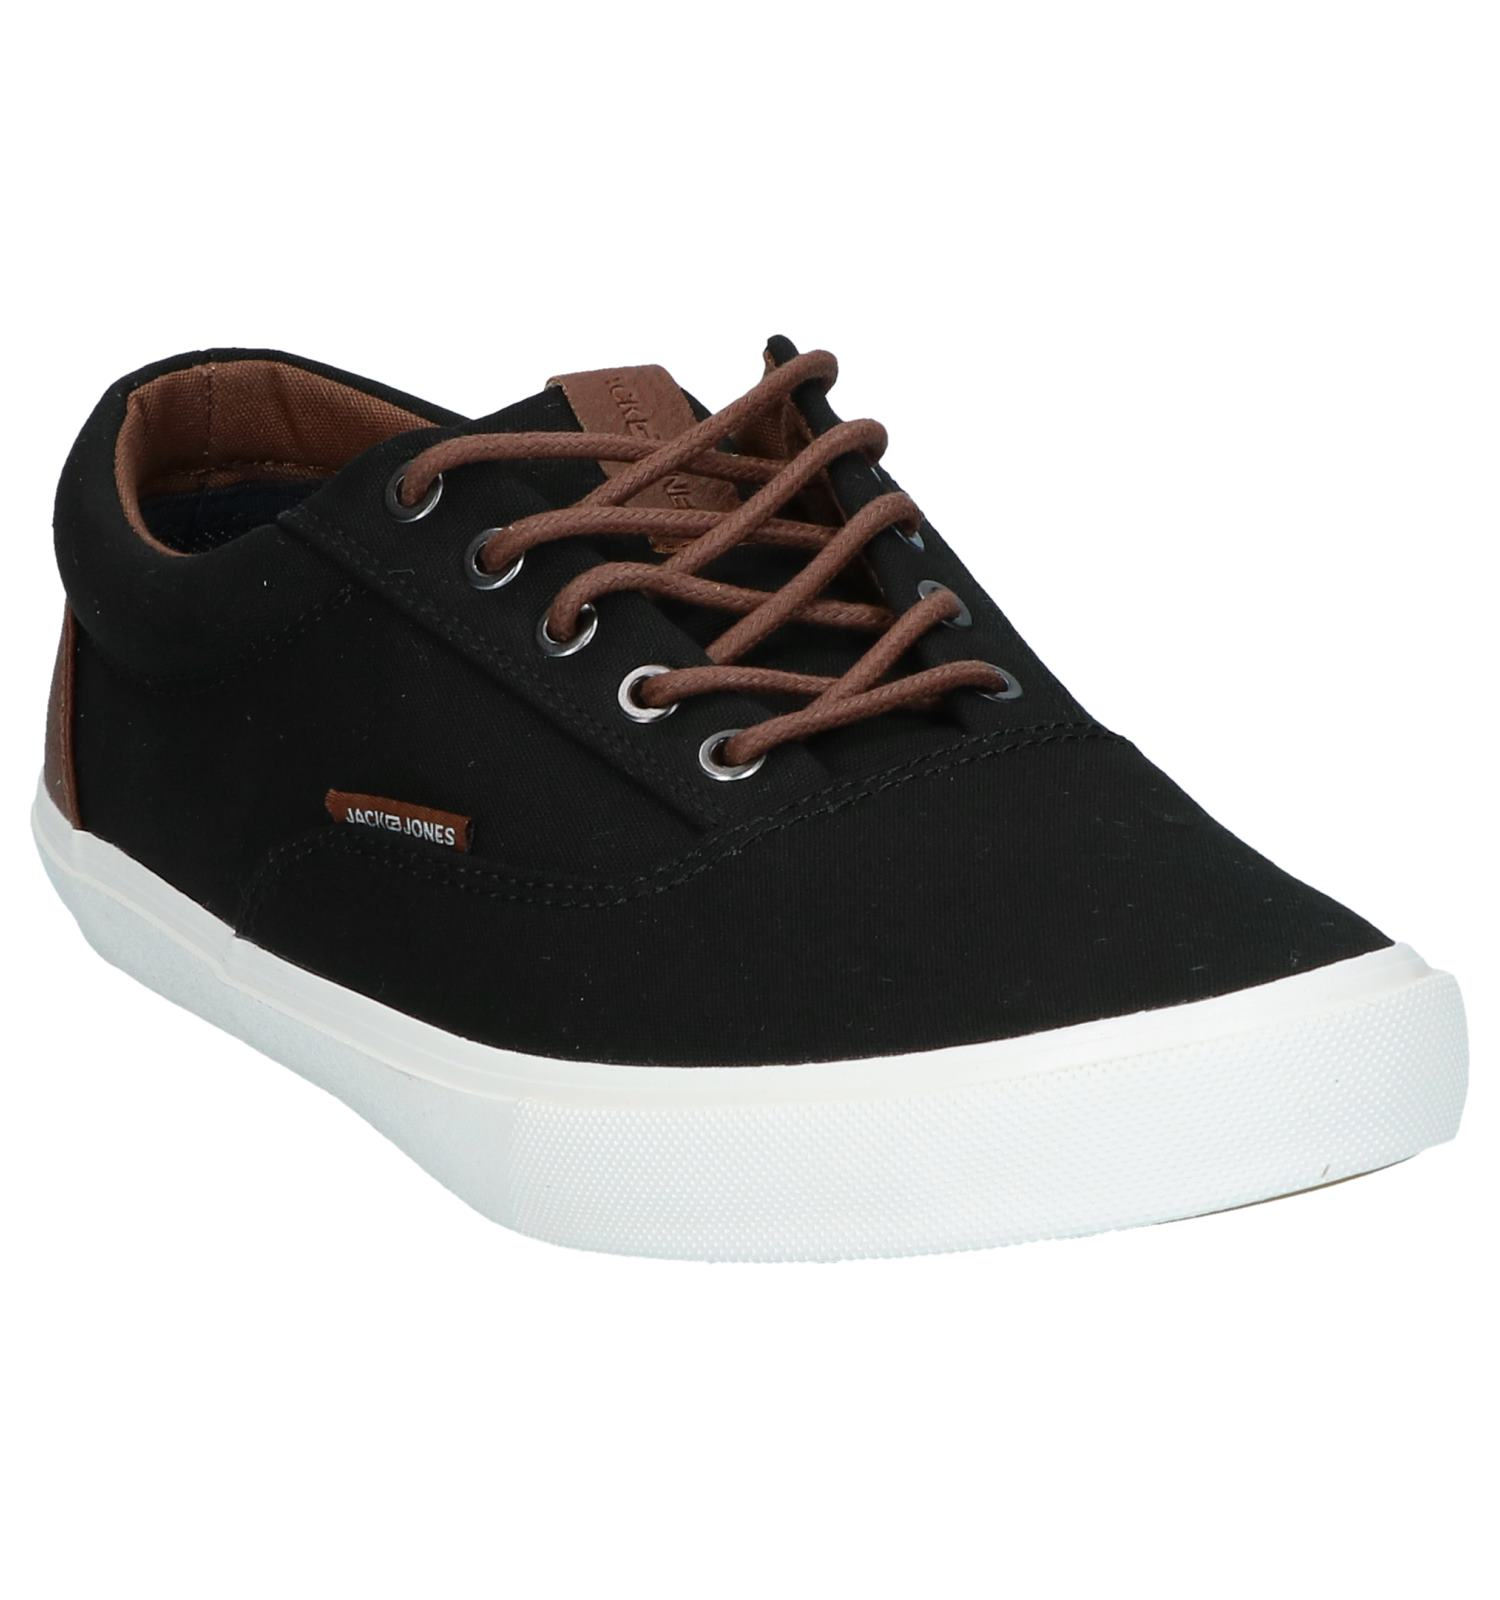 Zwarte Schoenen Jackamp; Mixed Vision Casual Jones zjULMqSVpG